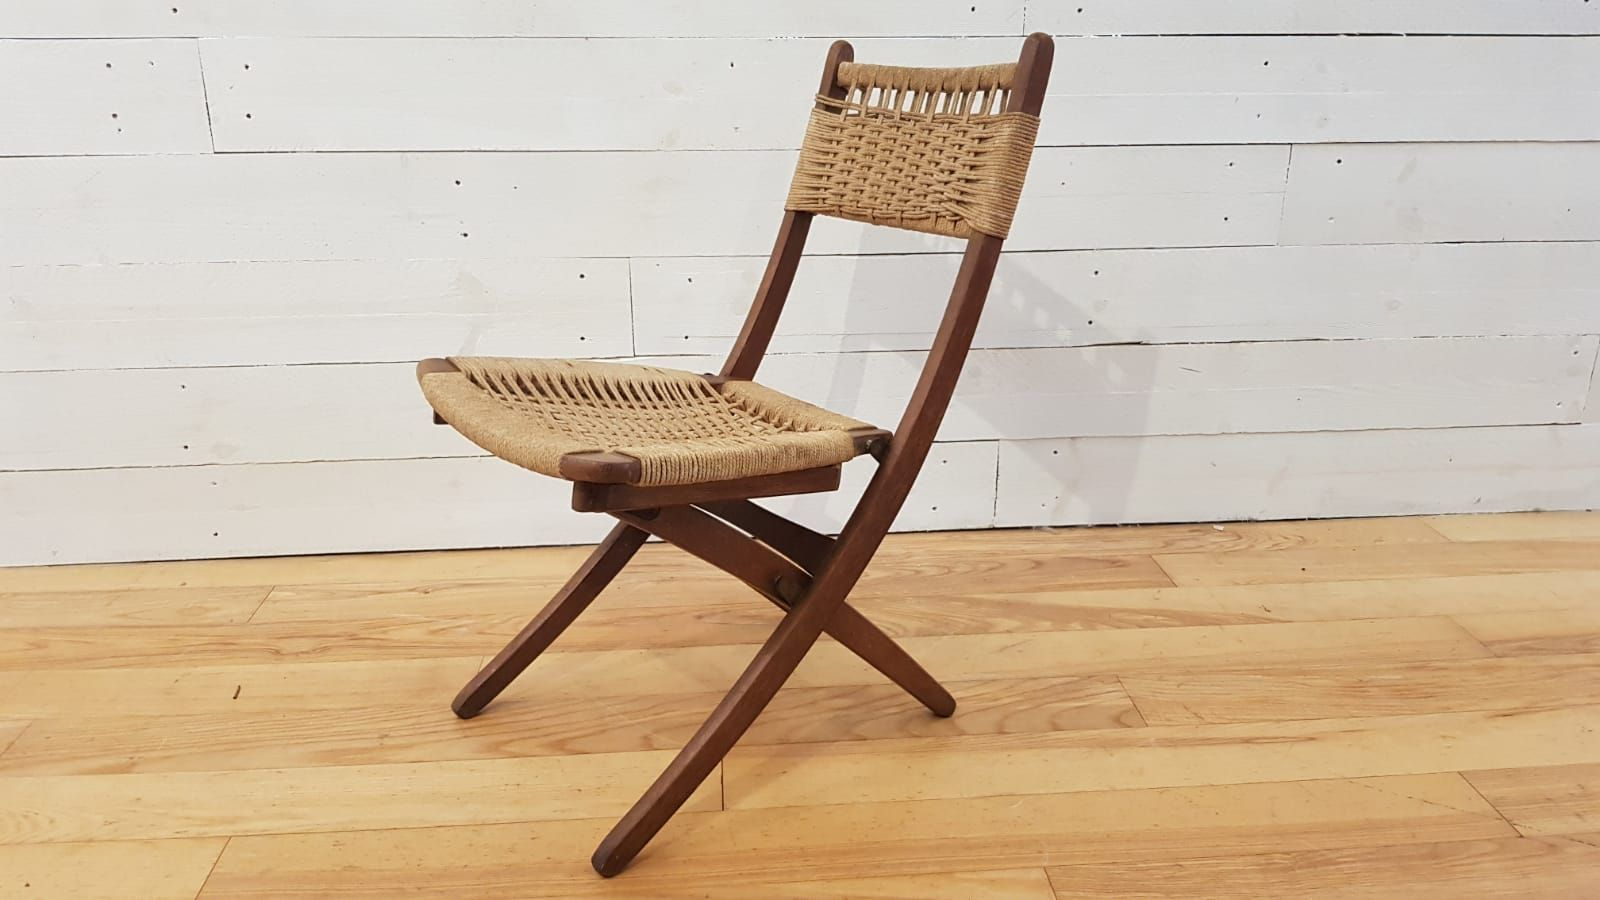 Enjoyable Mid Century Danish Teak Rope Folding Chairs 1960S Set Of 2 Ocoug Best Dining Table And Chair Ideas Images Ocougorg